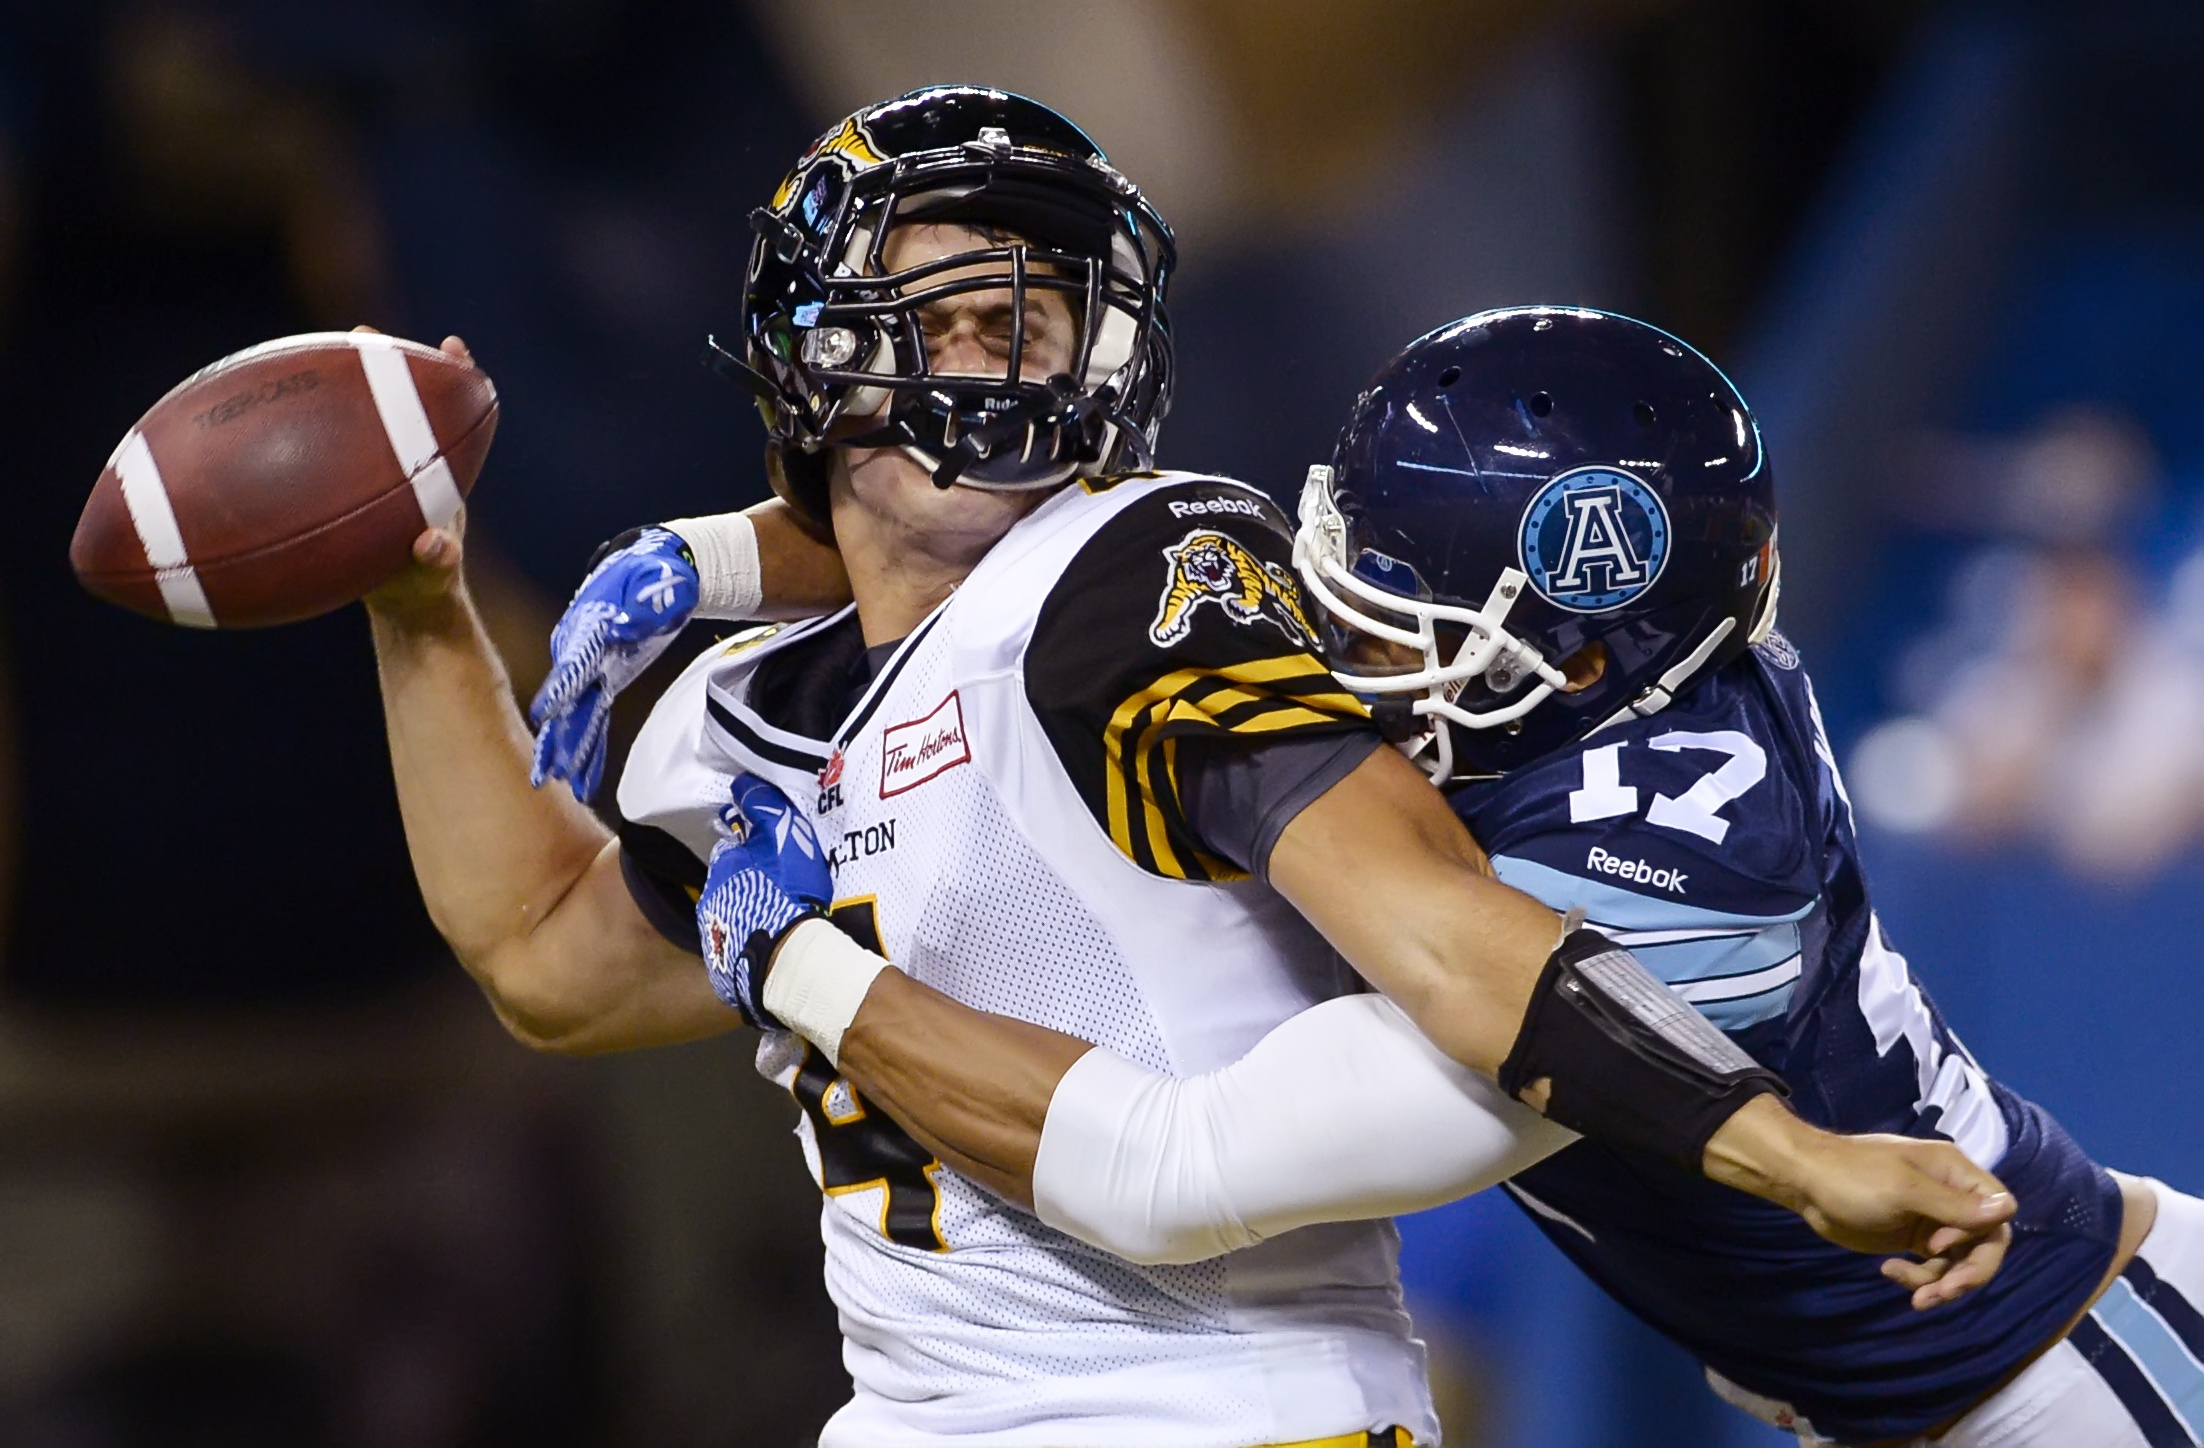 Toronto Argonauts defensive back Matt Ware sacks Hamilton Tiger-Cats quarterback Zach Collaros during second-half play at the Rogers Centre in Toronto, Ont. on October 10, 2014.